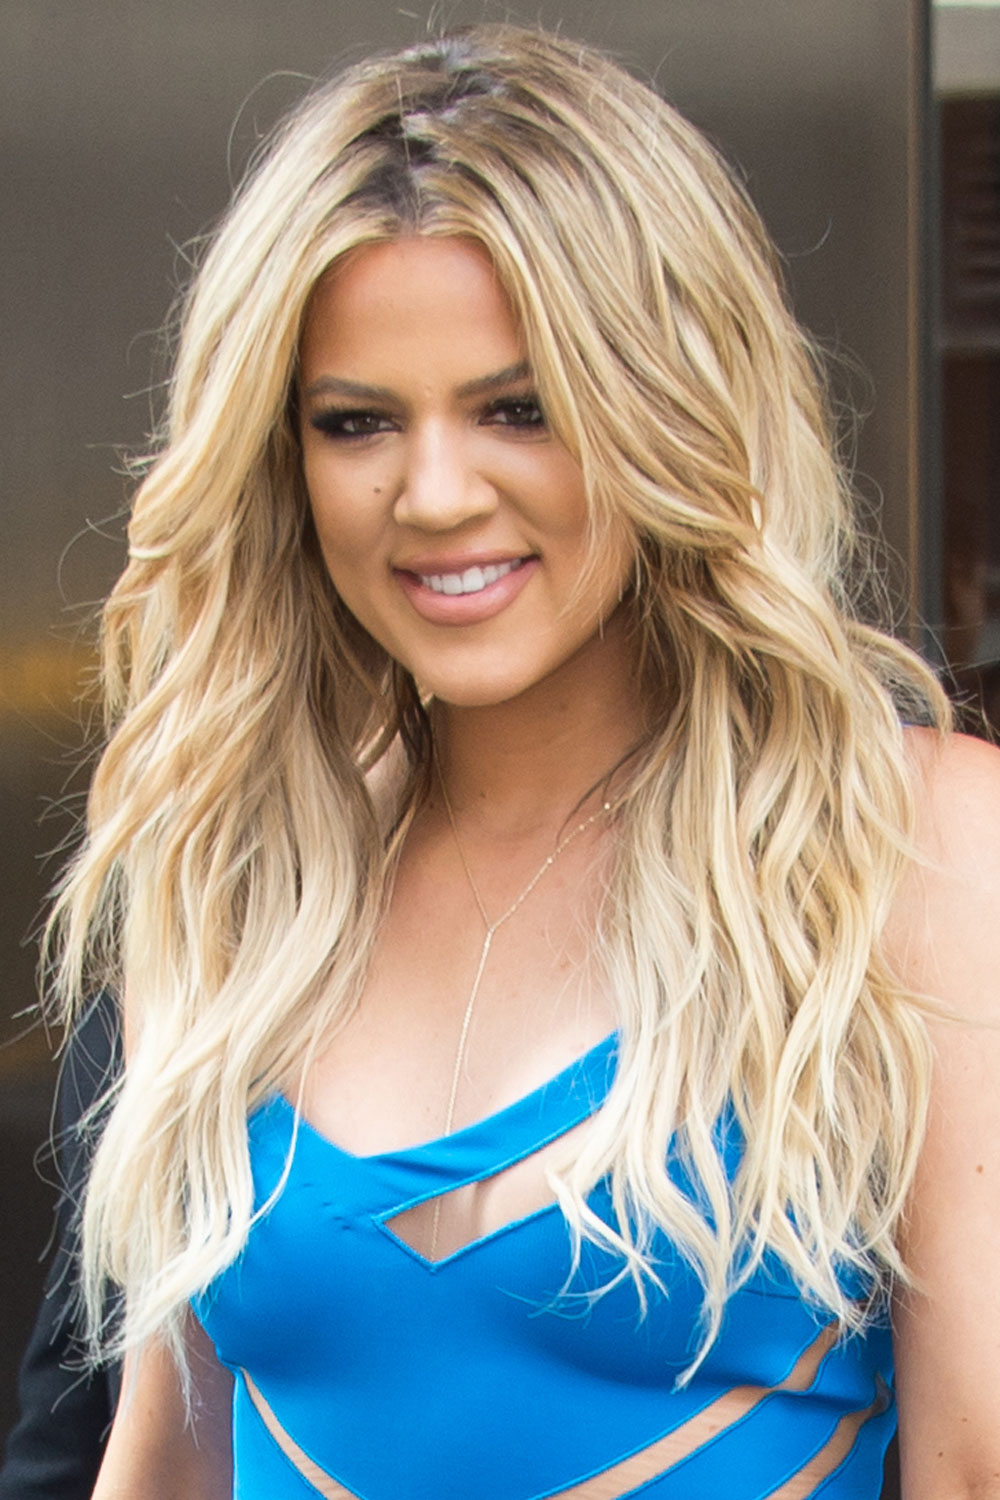 Miraculous 36 Blonde Hair Colors For 2017 Best Celebrity Blonde Hairstyles Hairstyles For Women Draintrainus